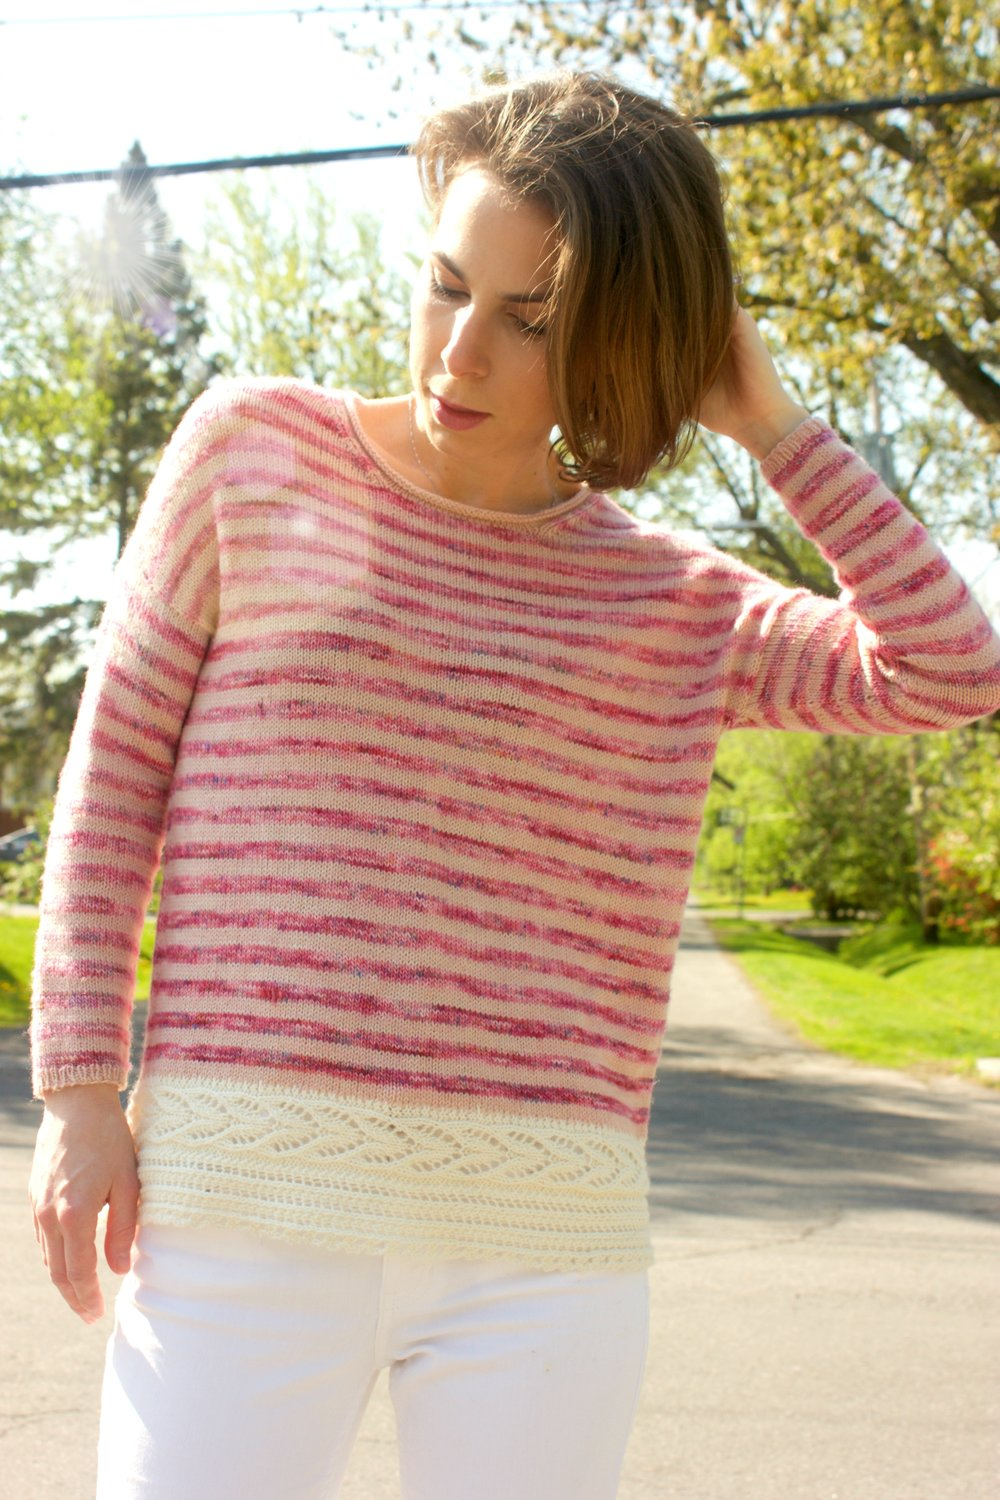 Indian Summer knit by Tanis Fiber Arts